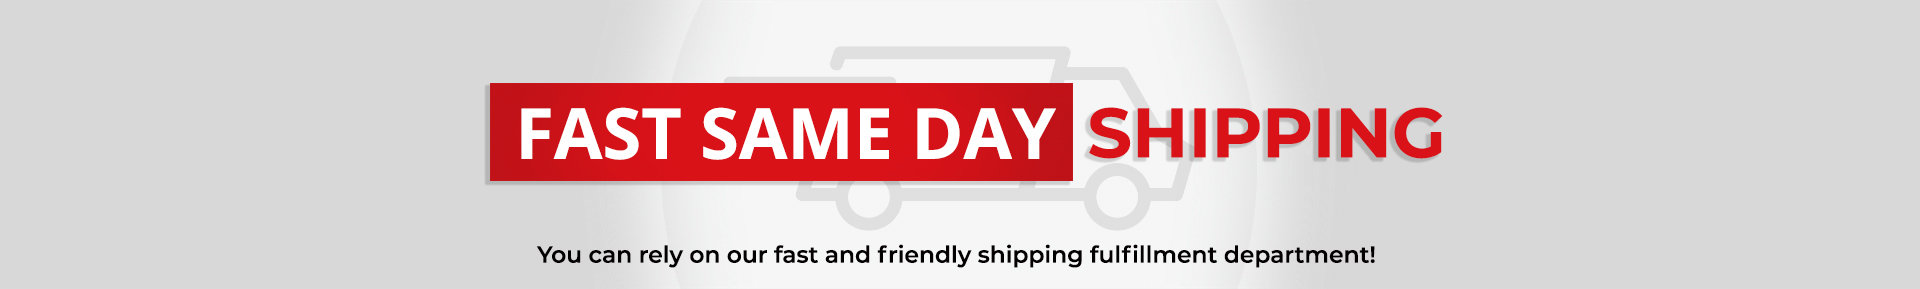 Fast Same Day Shipping